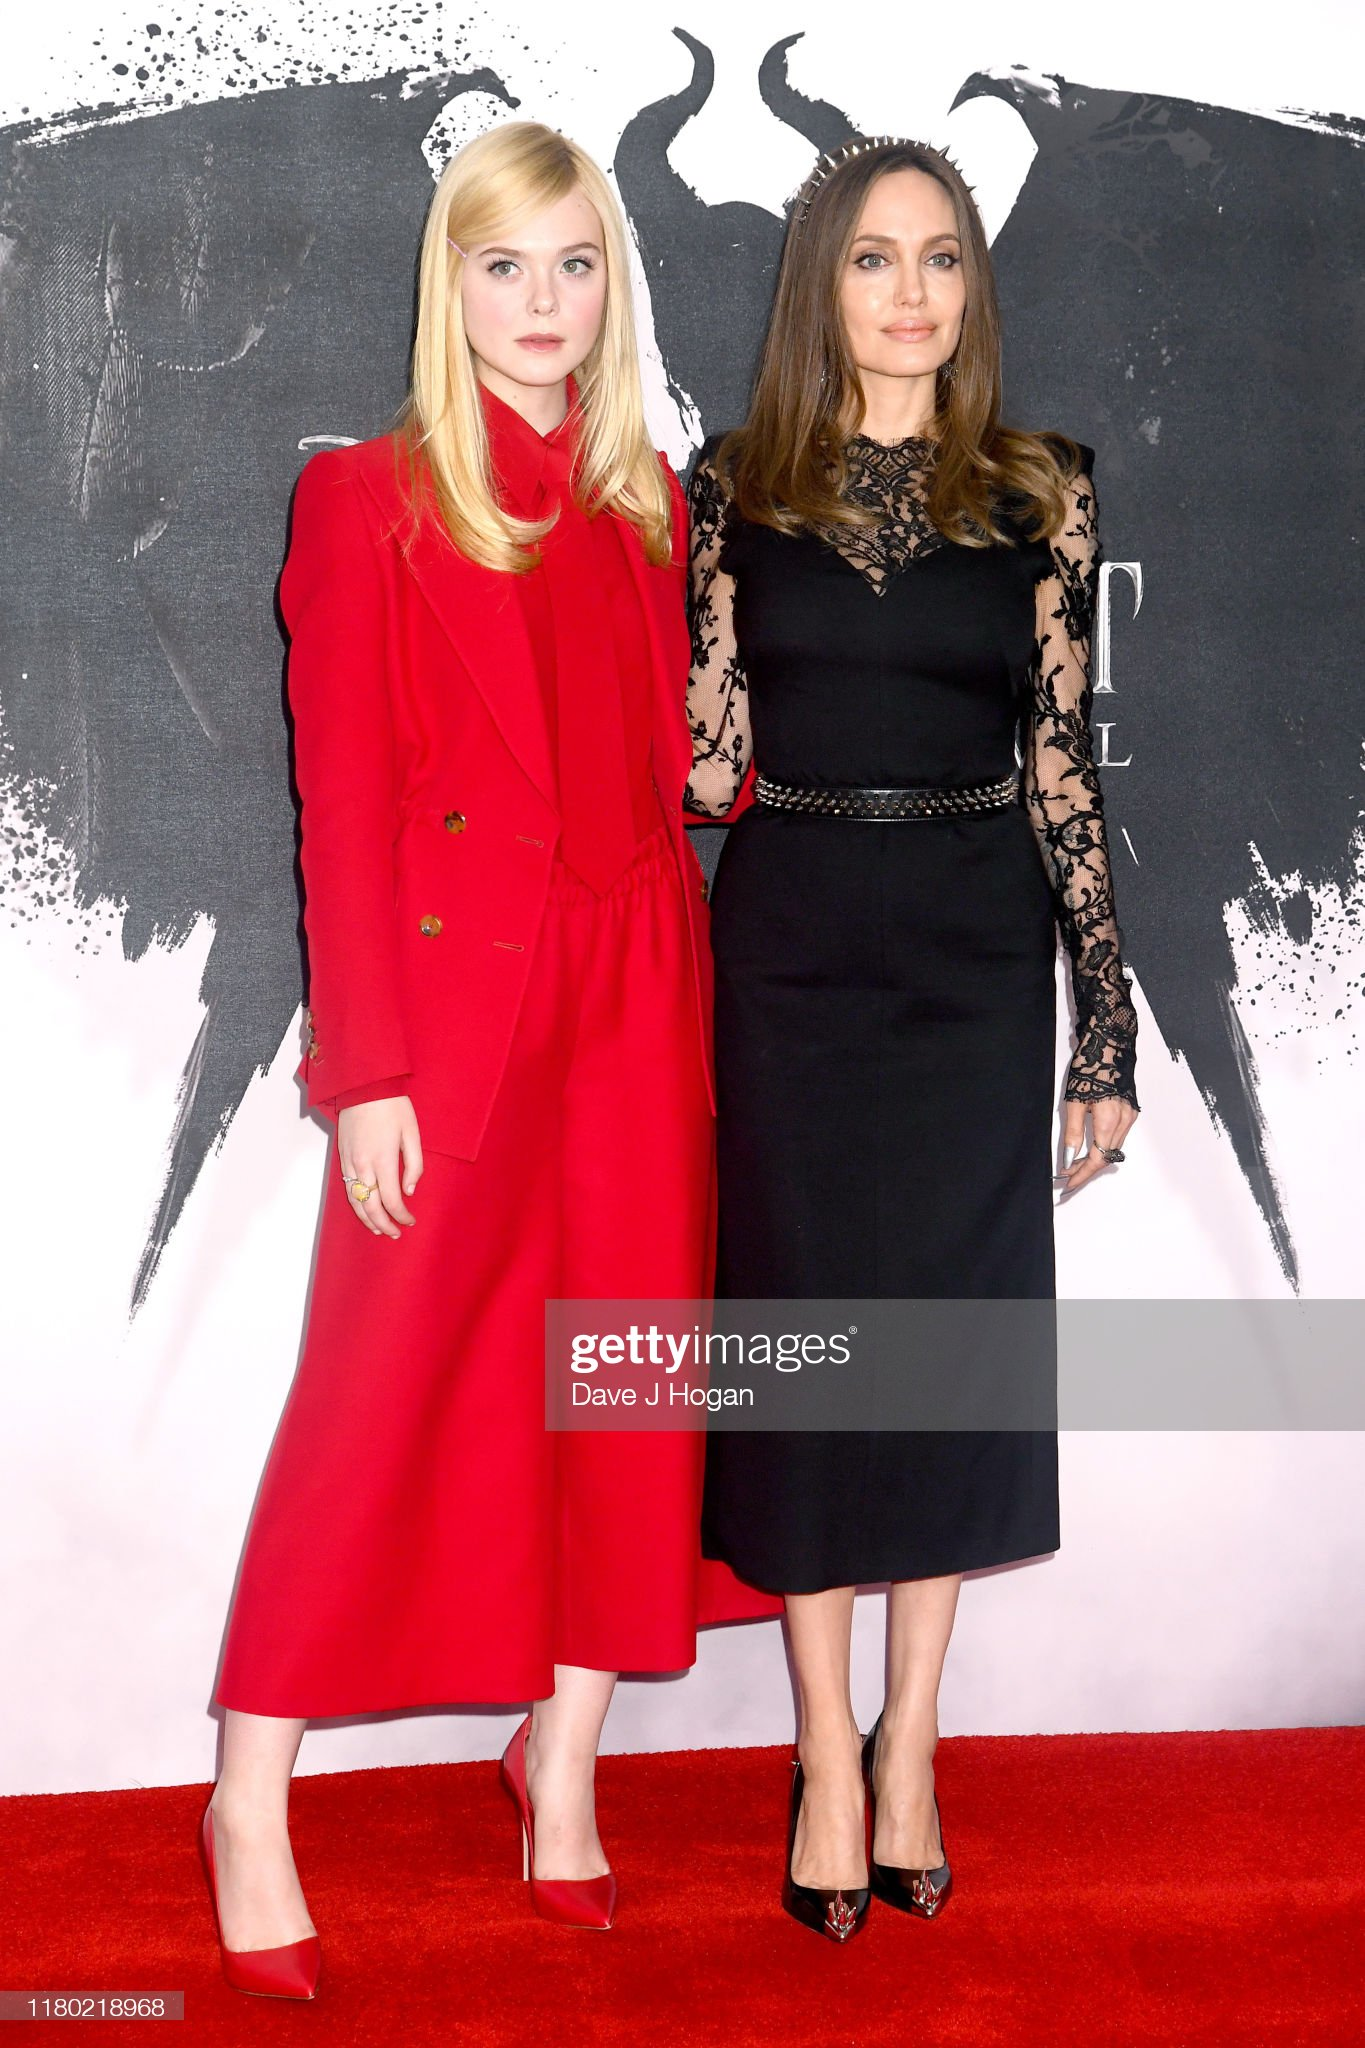 ¿Cuánto mide Elle Fanning? - Altura - Real height Elle-fanning-and-angelina-jolie-attend-a-photocall-for-maleficent-of-picture-id1180218968?s=2048x2048